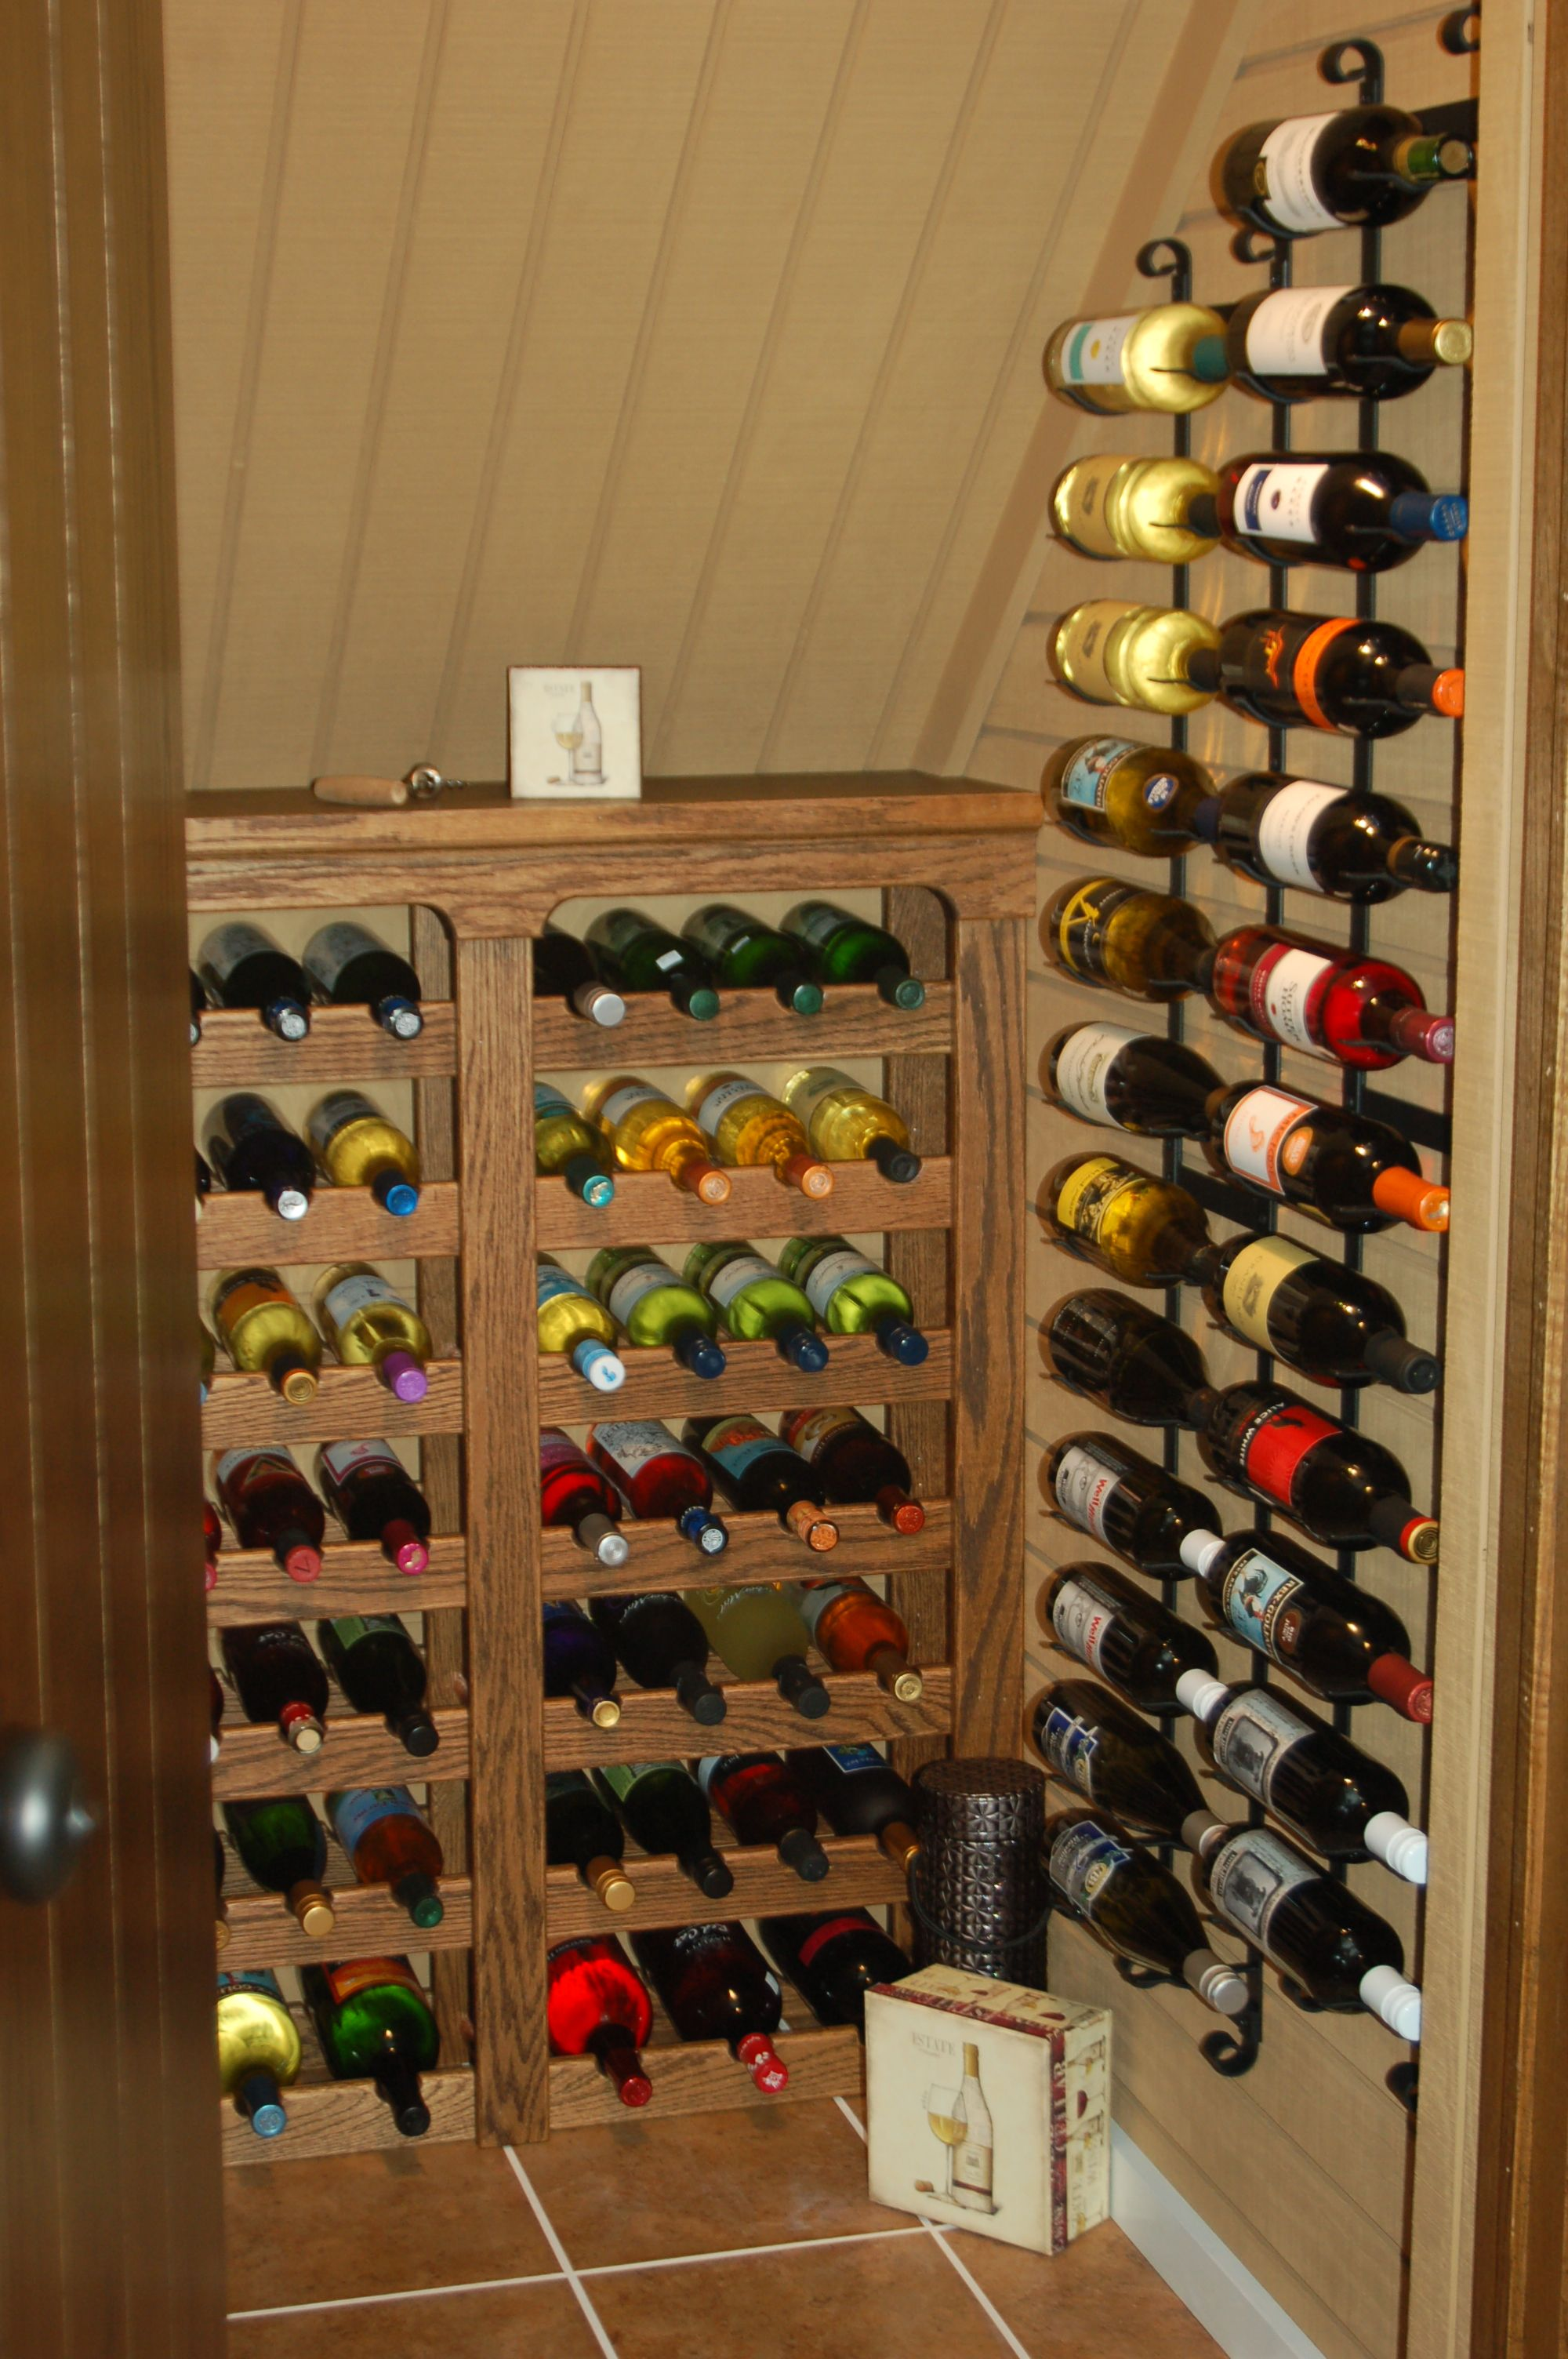 closet becomes wine 'cellar' - i think i'd rather do a little